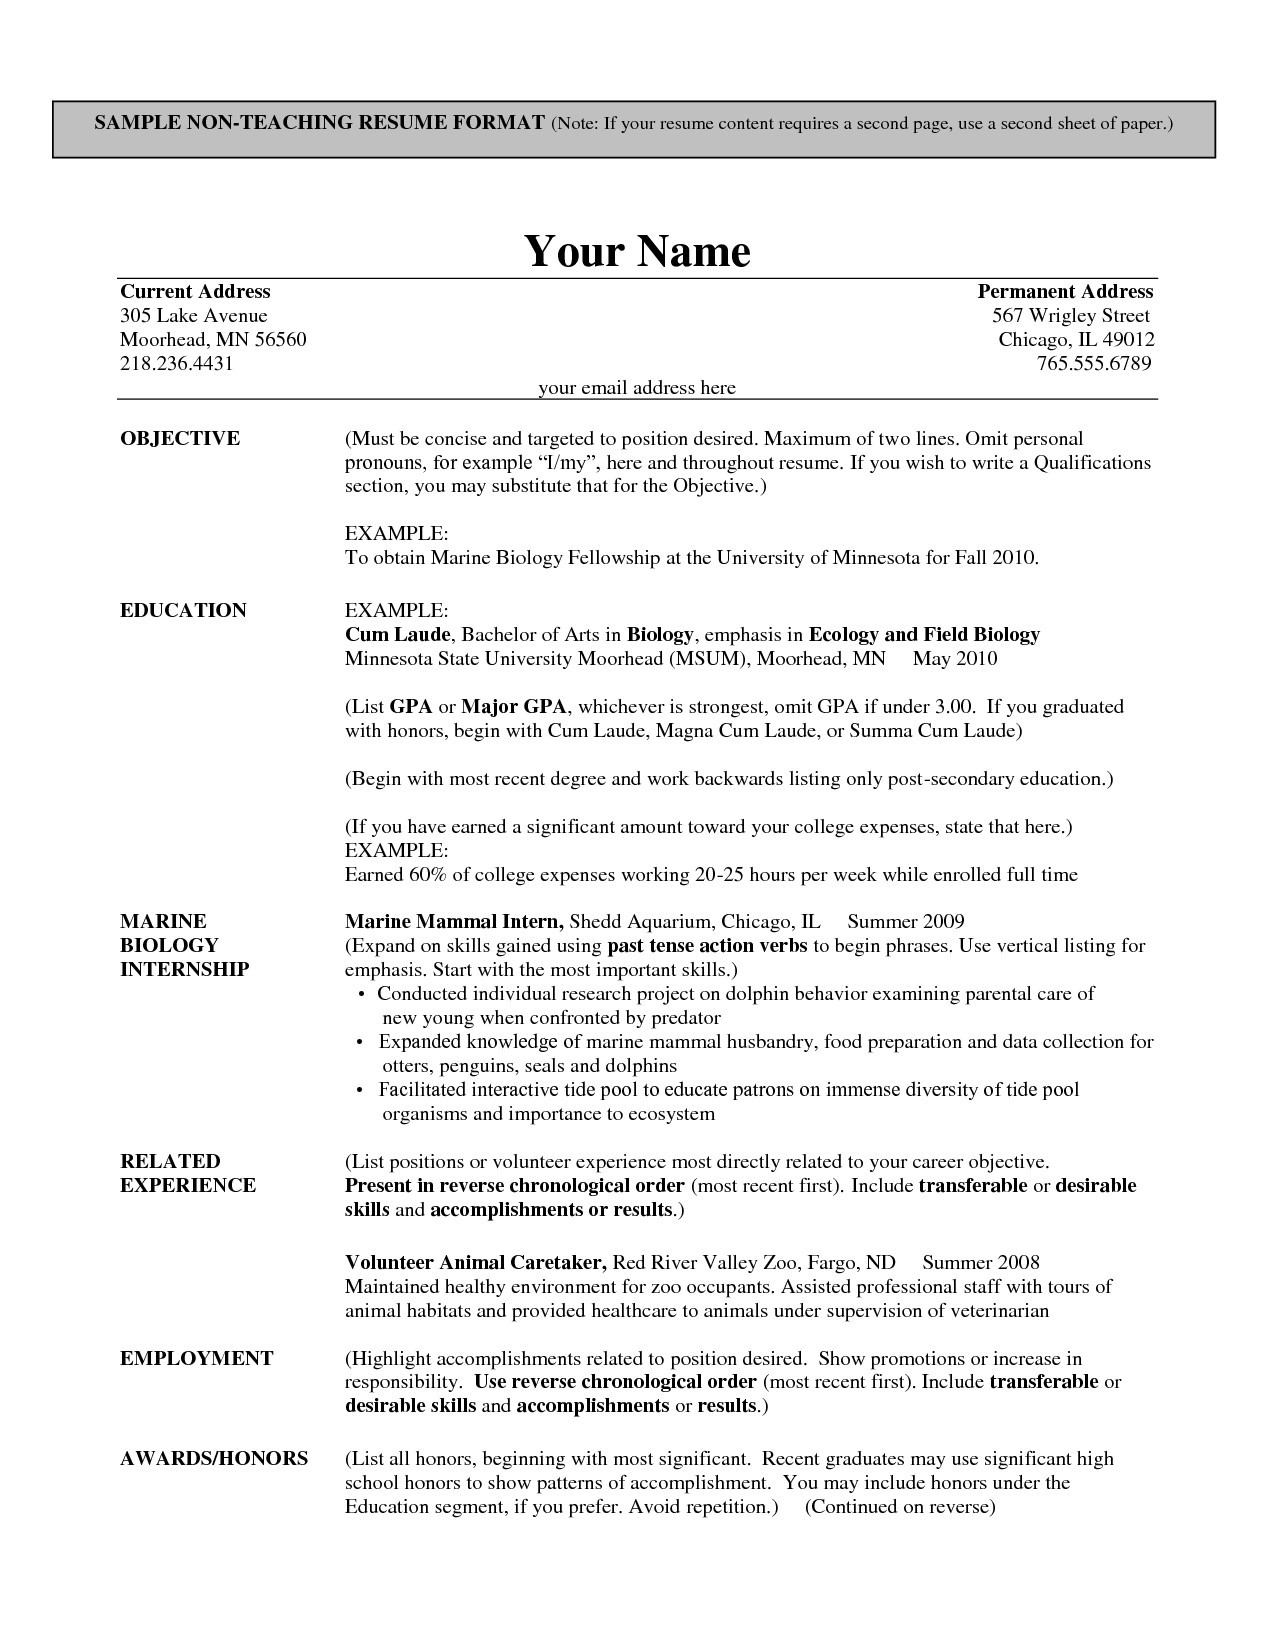 14 optimal resume mdc examples